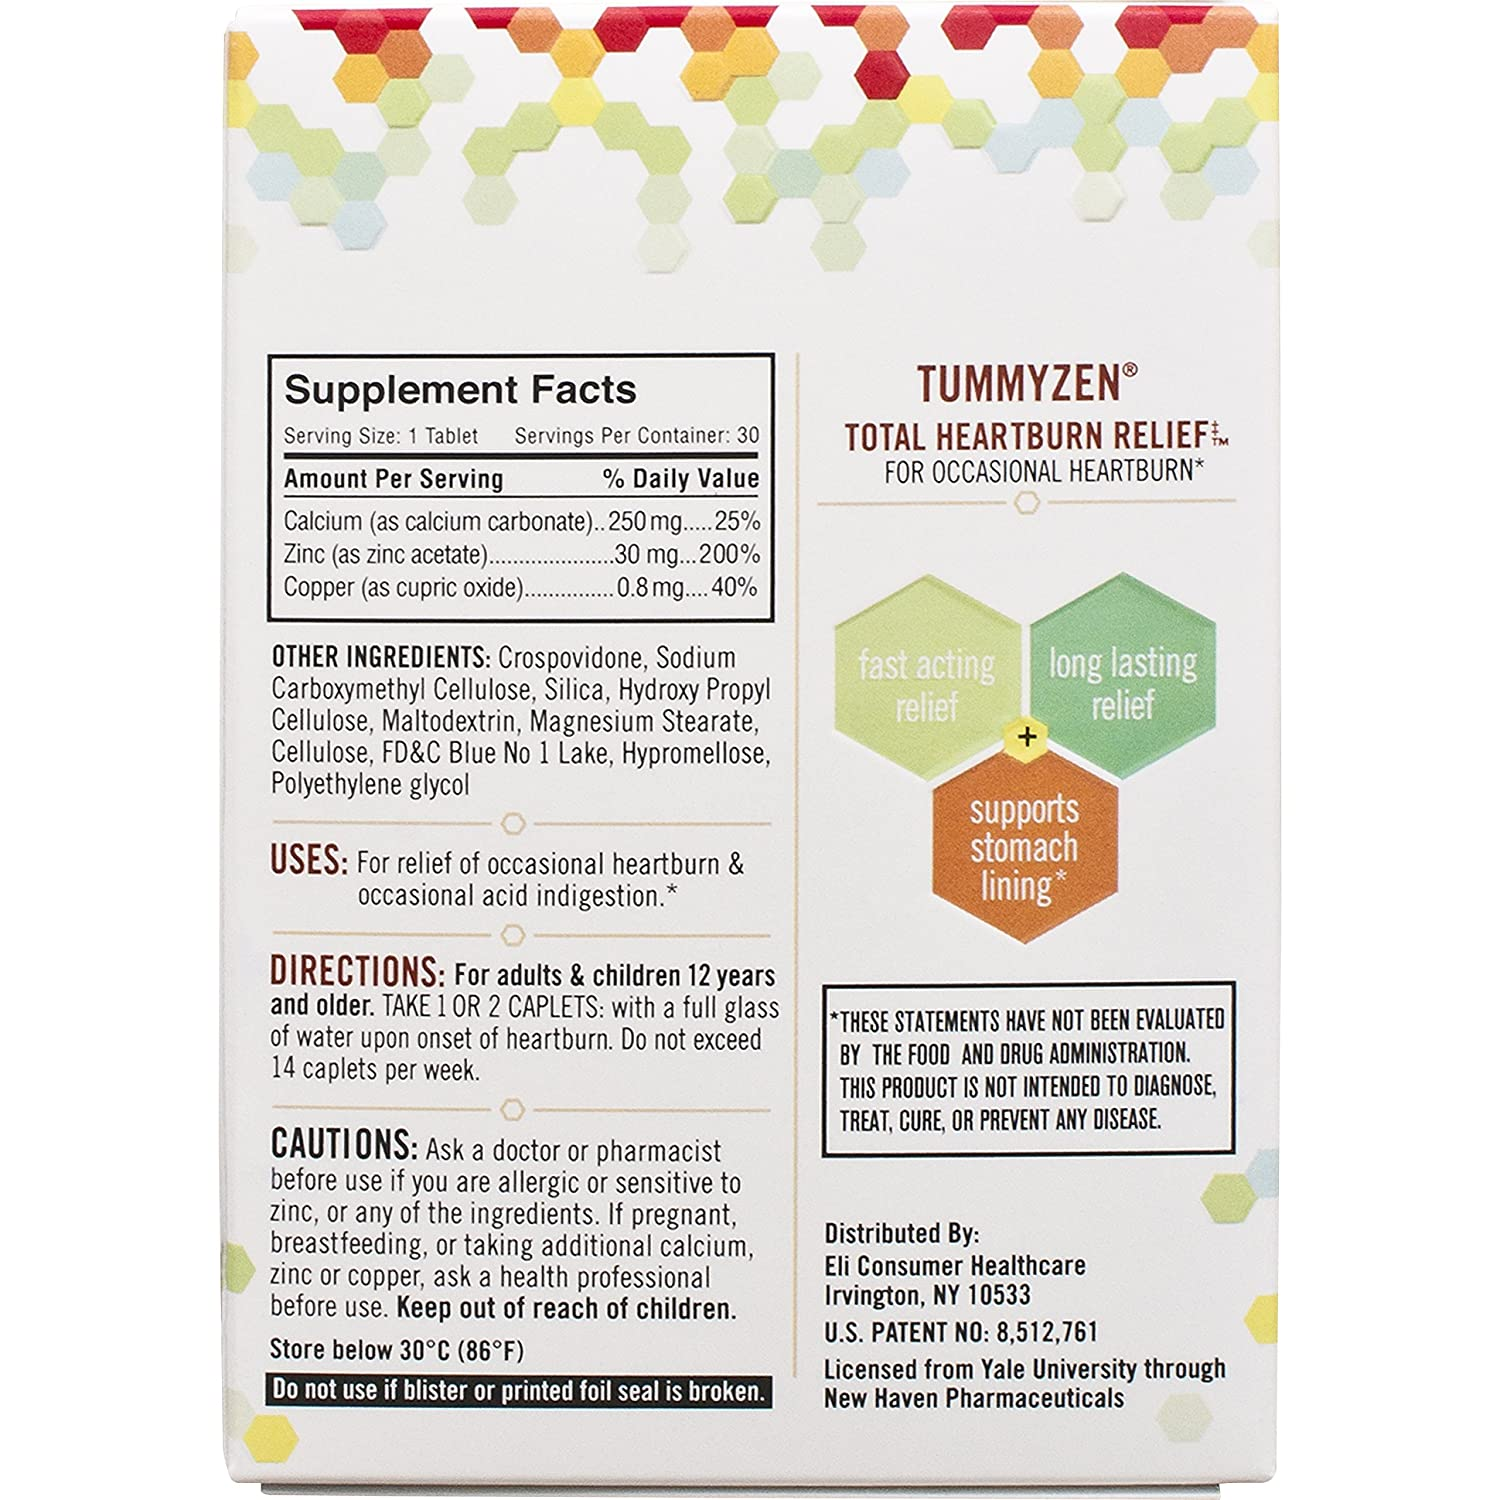 Amazon.com: TummyZen Advanced Heartburn and Relief with Patented Natural  Zinc and Calcium Formula, Long Lasting and Fast Acting - 30 Caplets: Health  ...